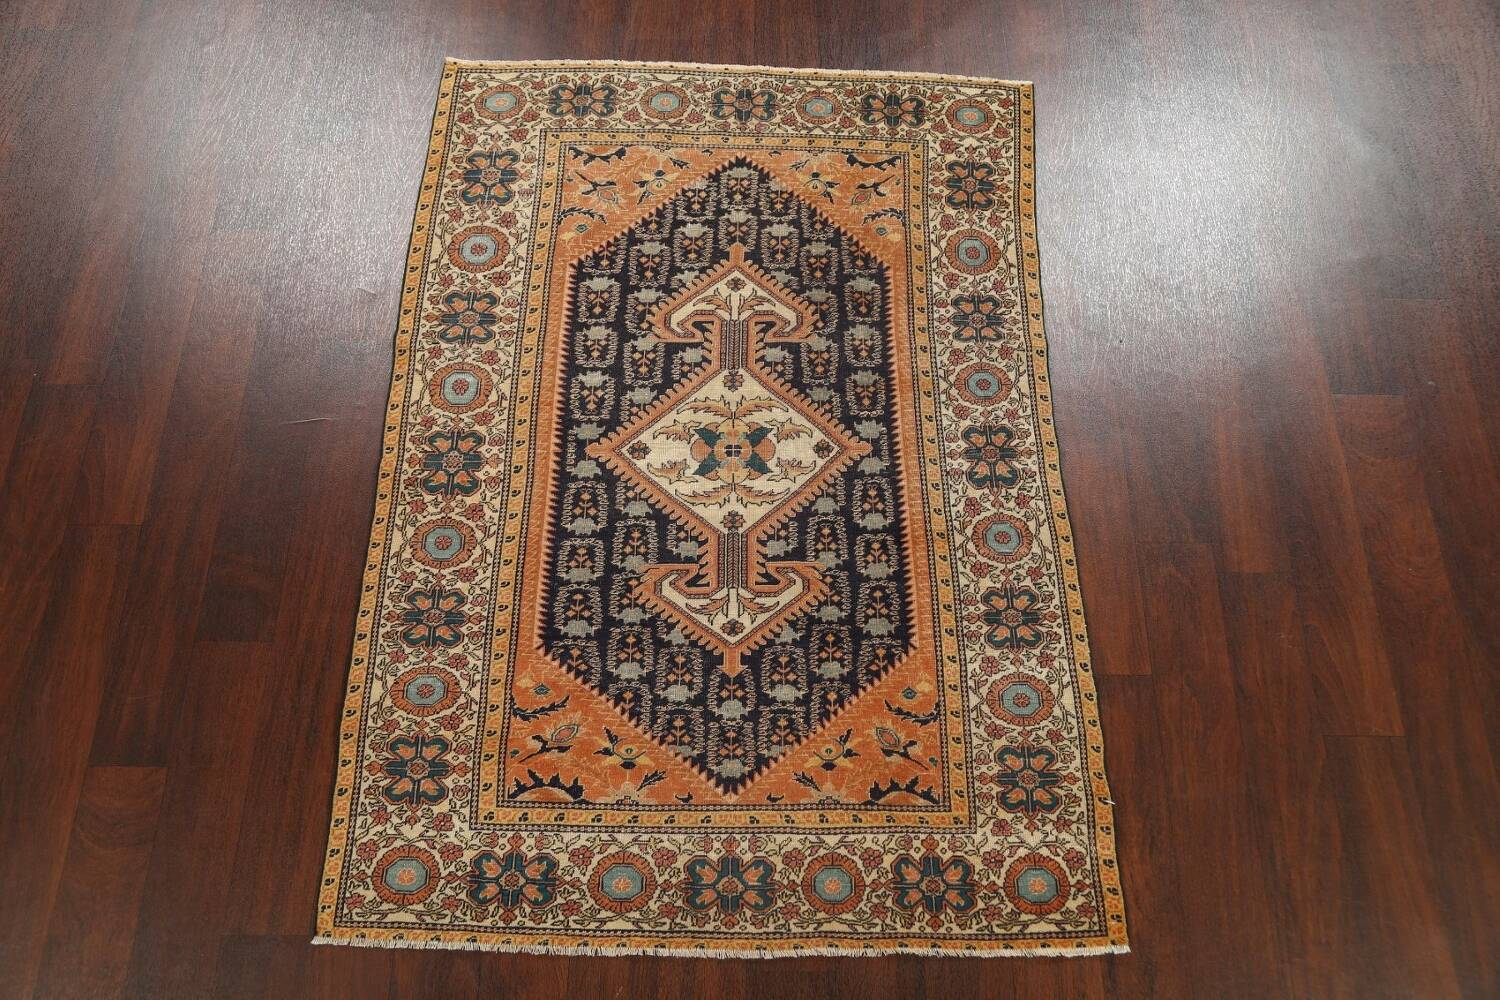 Antique 100% Vegetable Dye Sultanabad Persian Area Rug 4x5 image 14